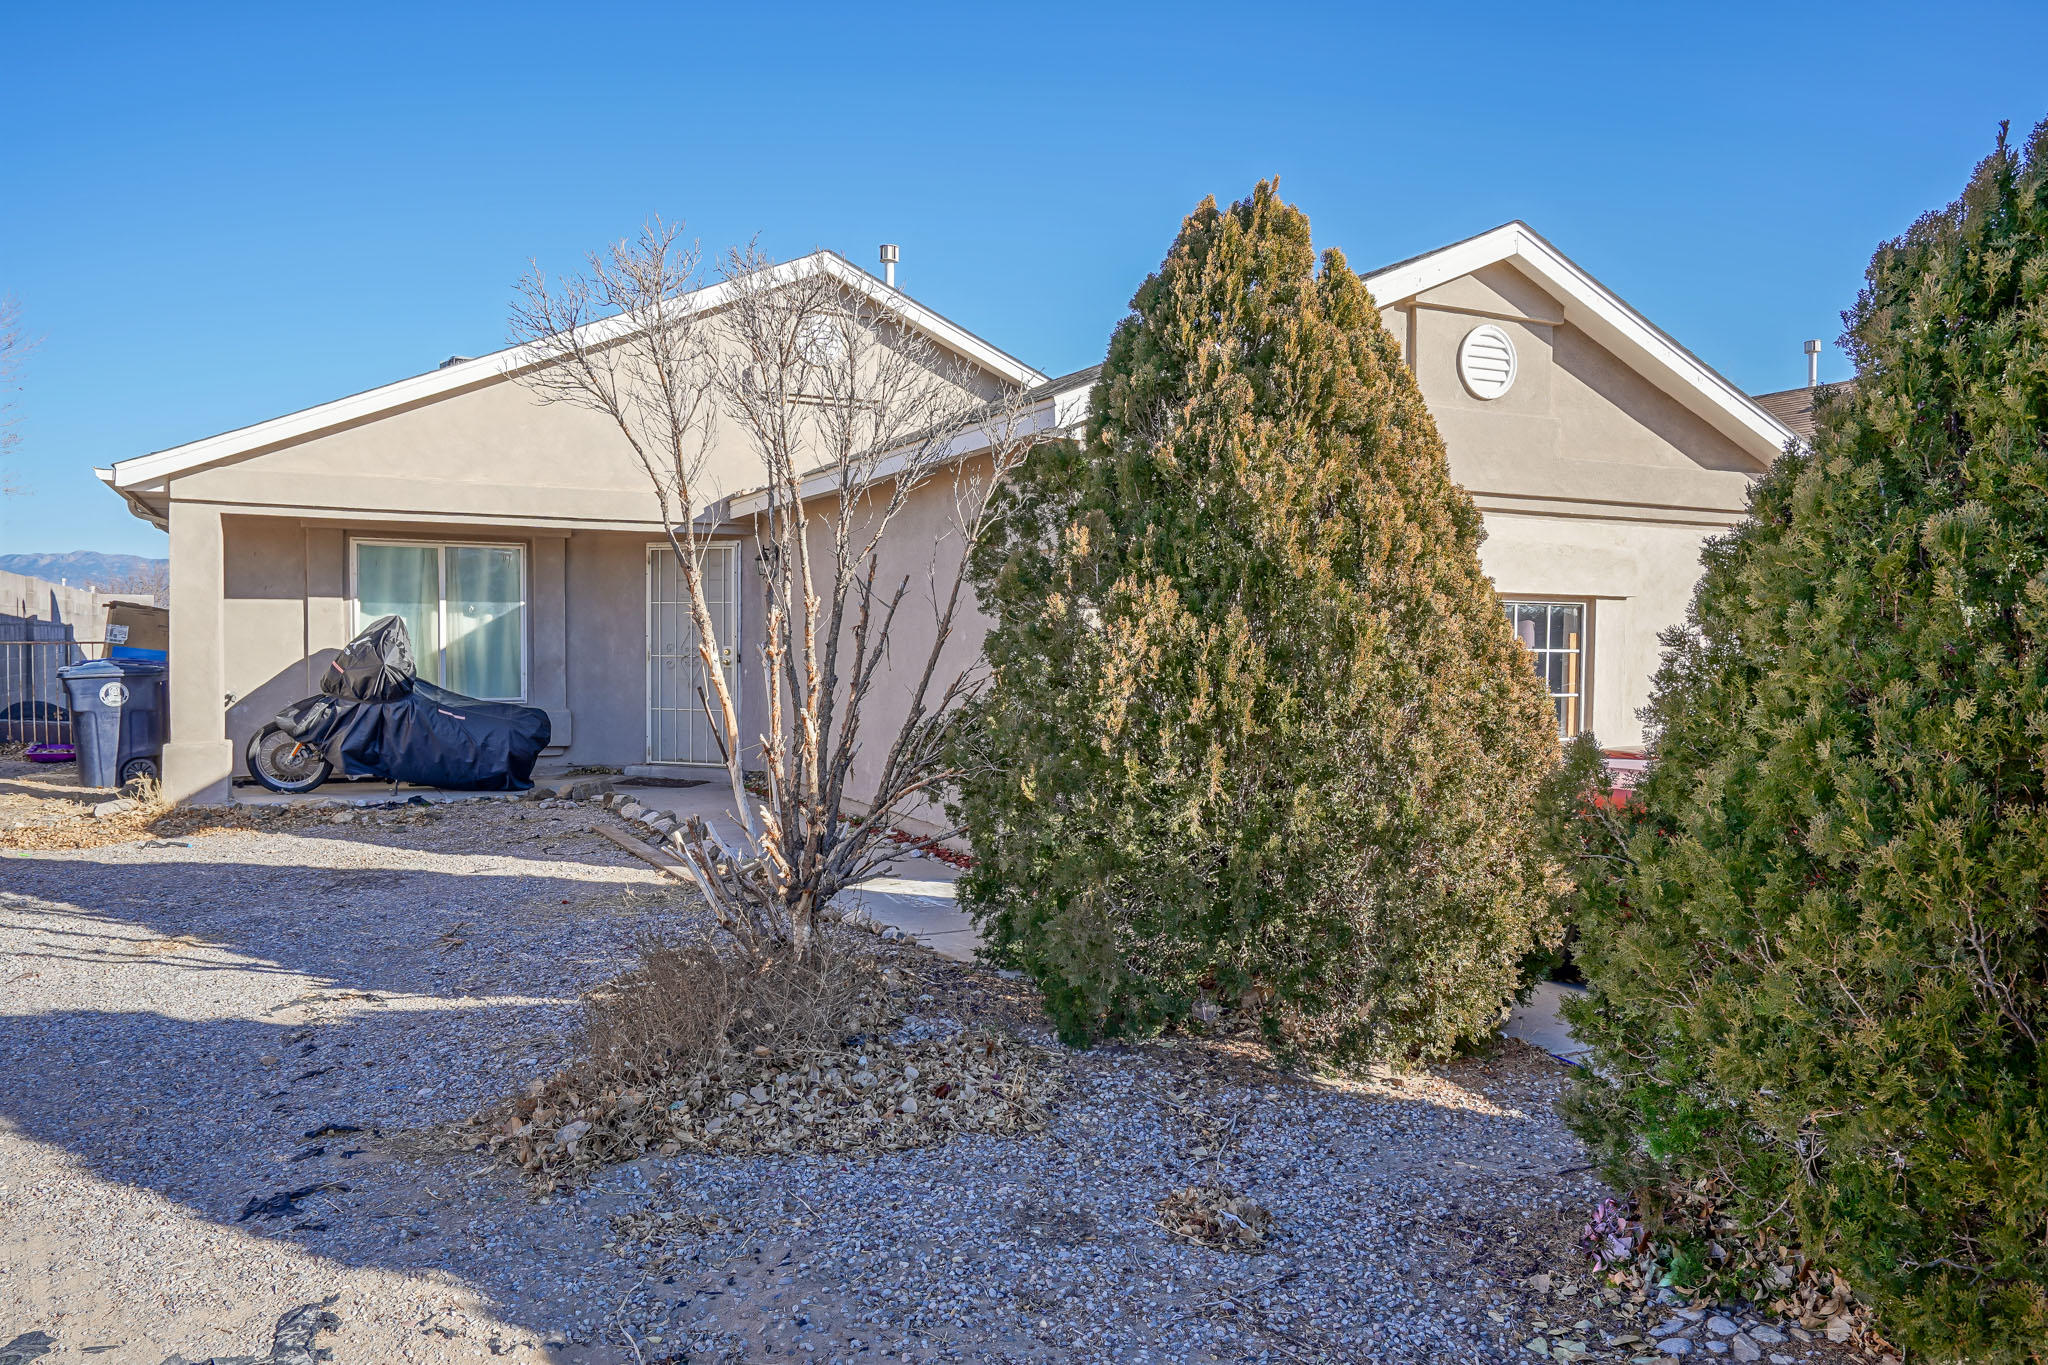 Welcome To Your Beautiful 4 Bedroom 2 Bathroom Westgate Heights Home.  This House Boasts A Beautiful Chefs Kitchen With A Brand New Backsplash, Brand New Carpet and Fresh Clean Bathrooms.  The Back Yard Is A Very Large Blank Canvas Ready For Your Personal Touch. This Home Will Not Last!